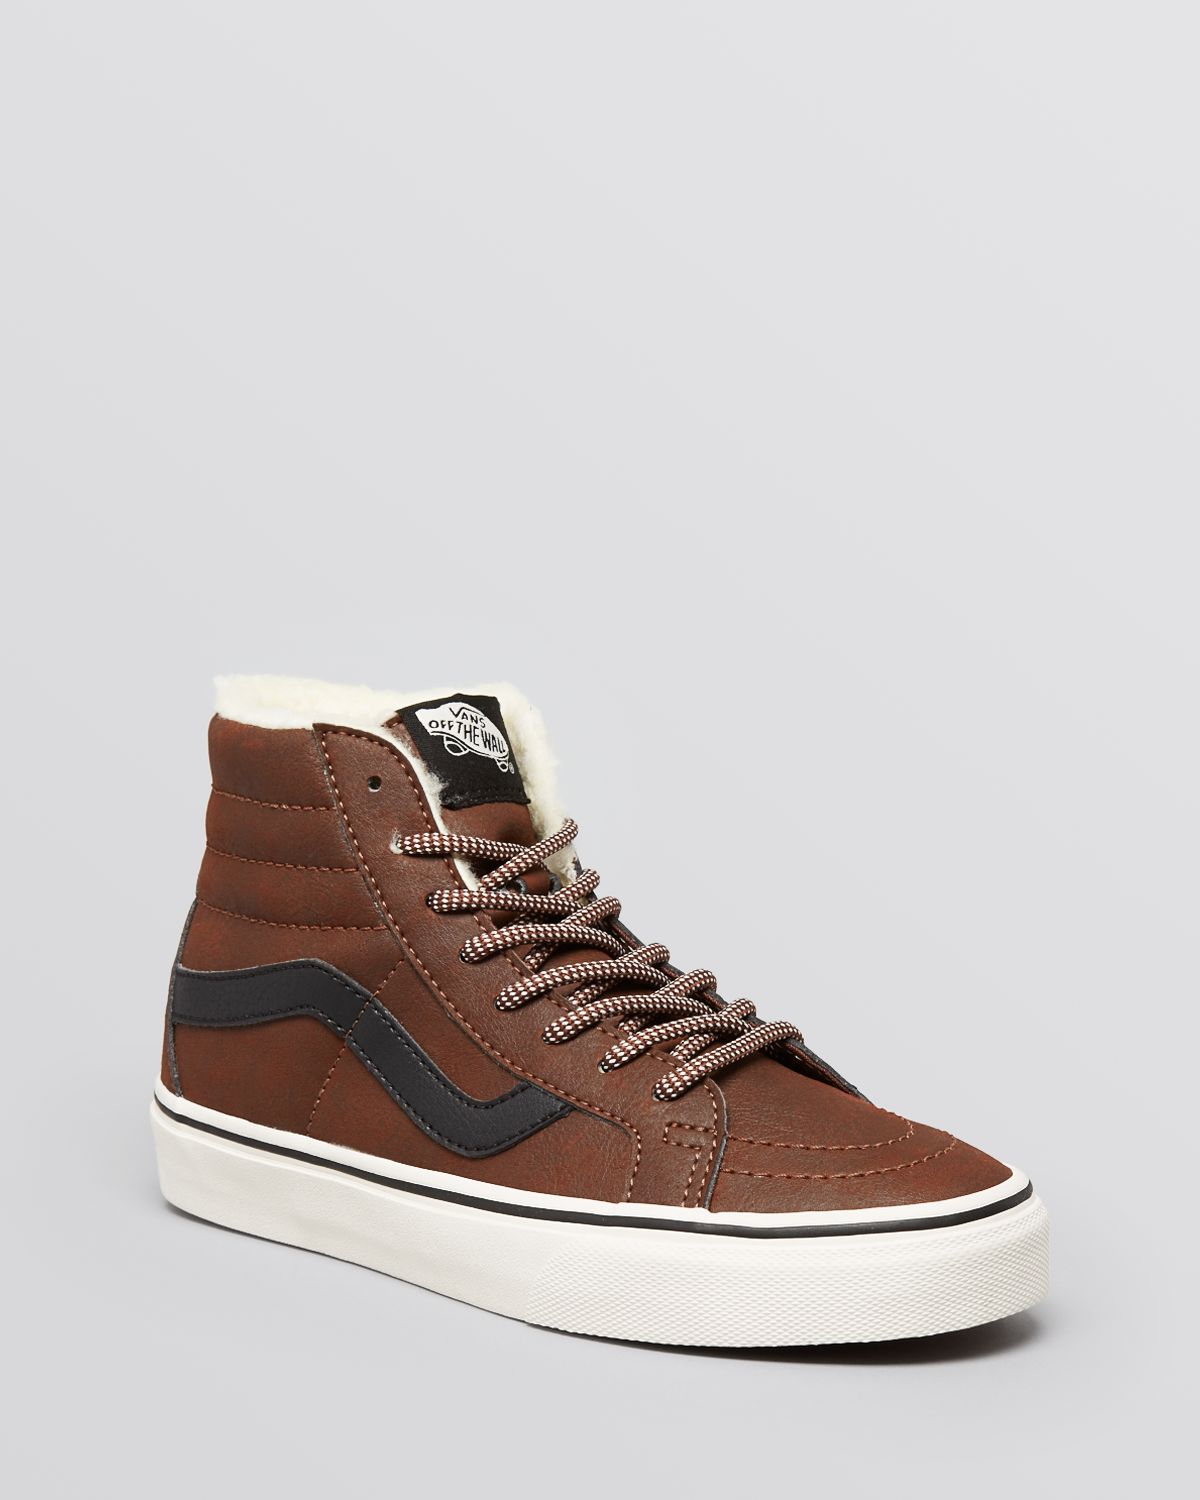 Lyst Reissue High Top Lace Brown Vans Sk8 Up Sneakers Hi In SxrARSU4nq